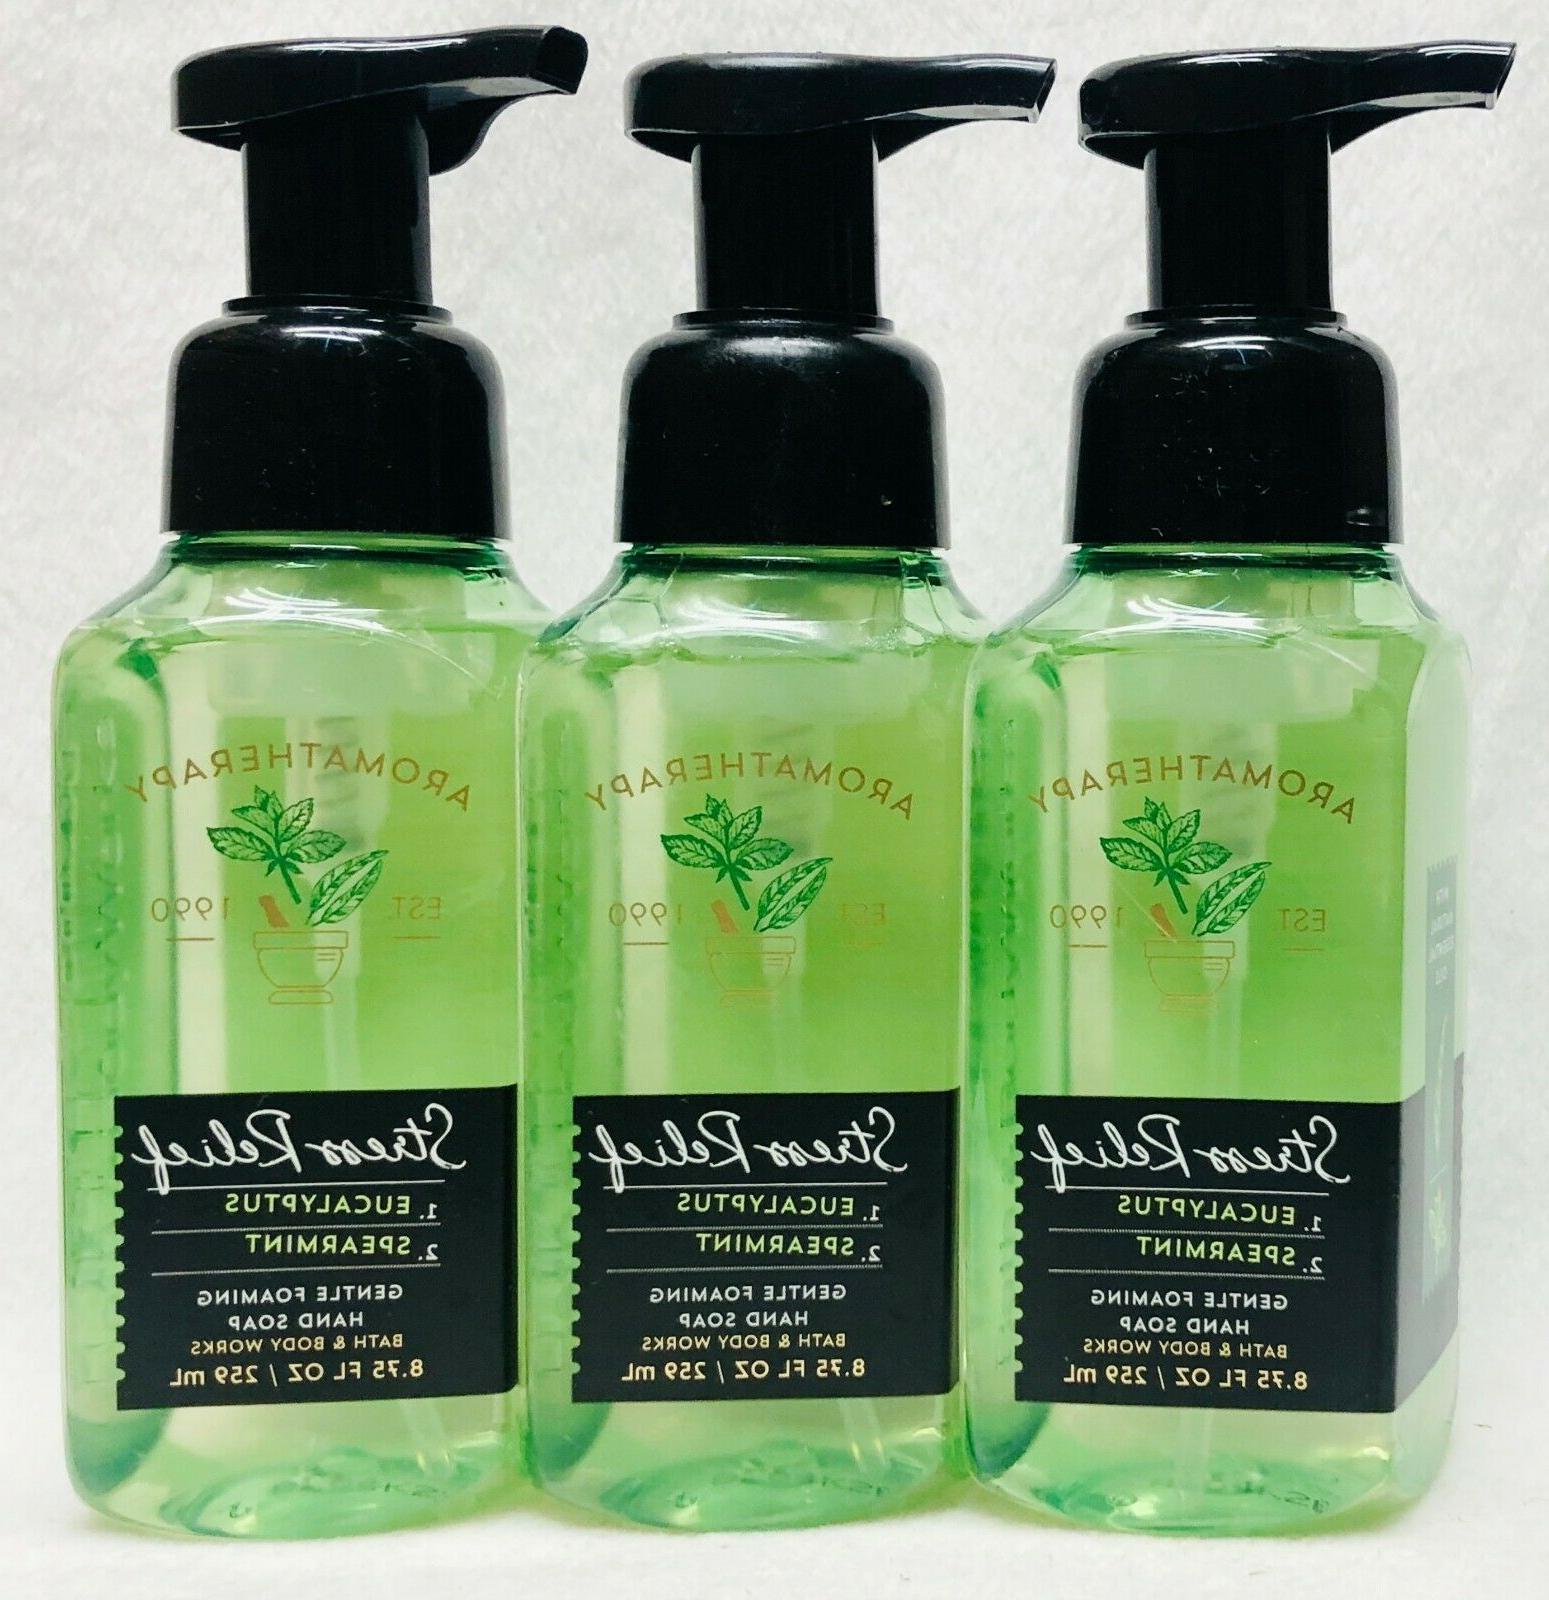 3 bath and body works stress relief